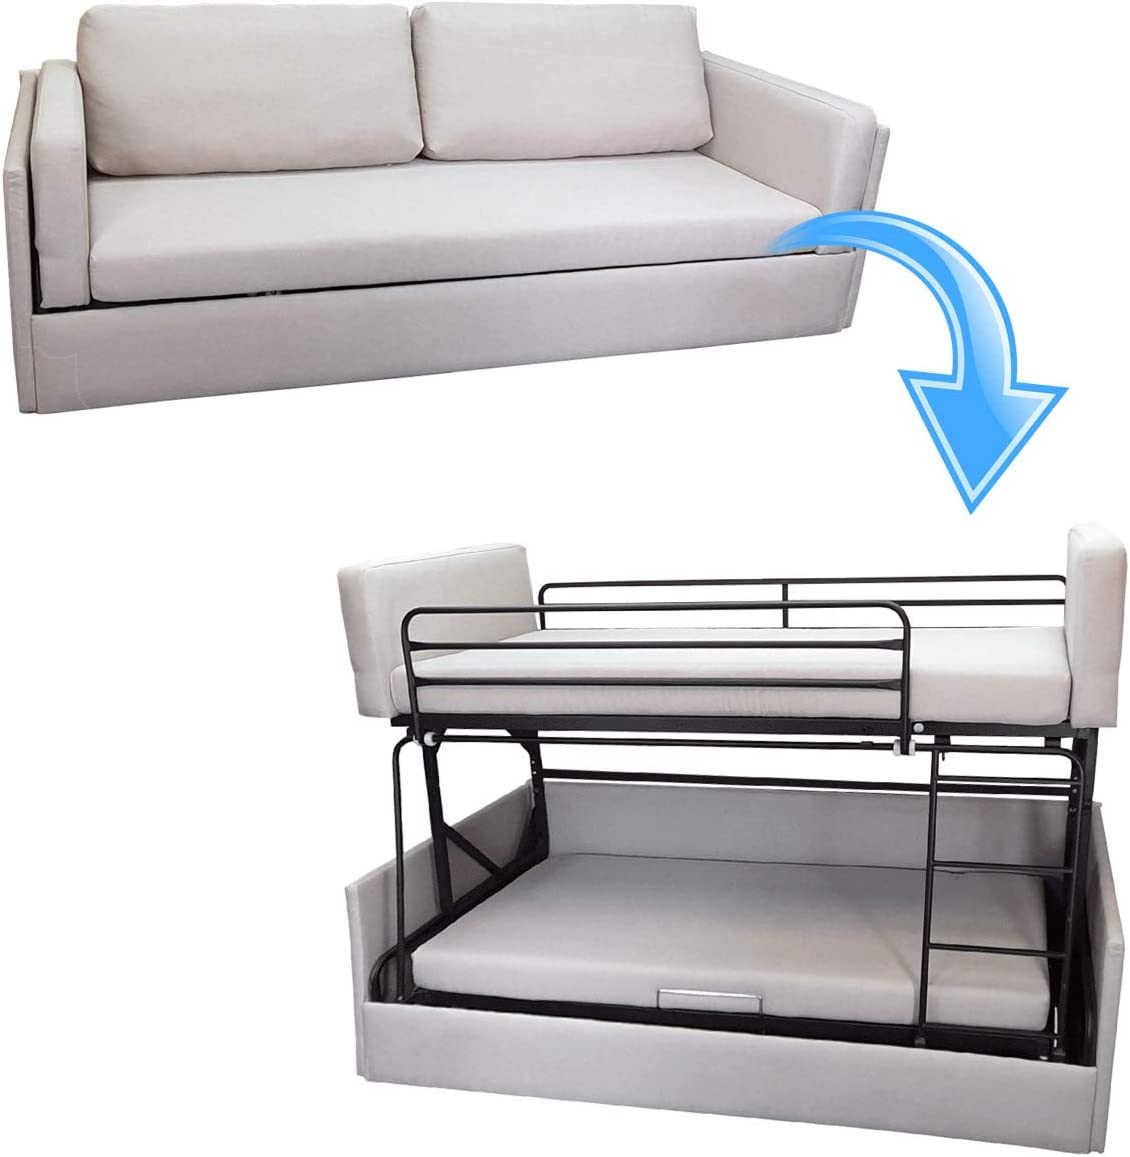 Platinum Furniture Transforming Sofa Bunk Bed In Grey Fabric Folding Couch Twin Bed Amazon Co Uk Kitchen Home